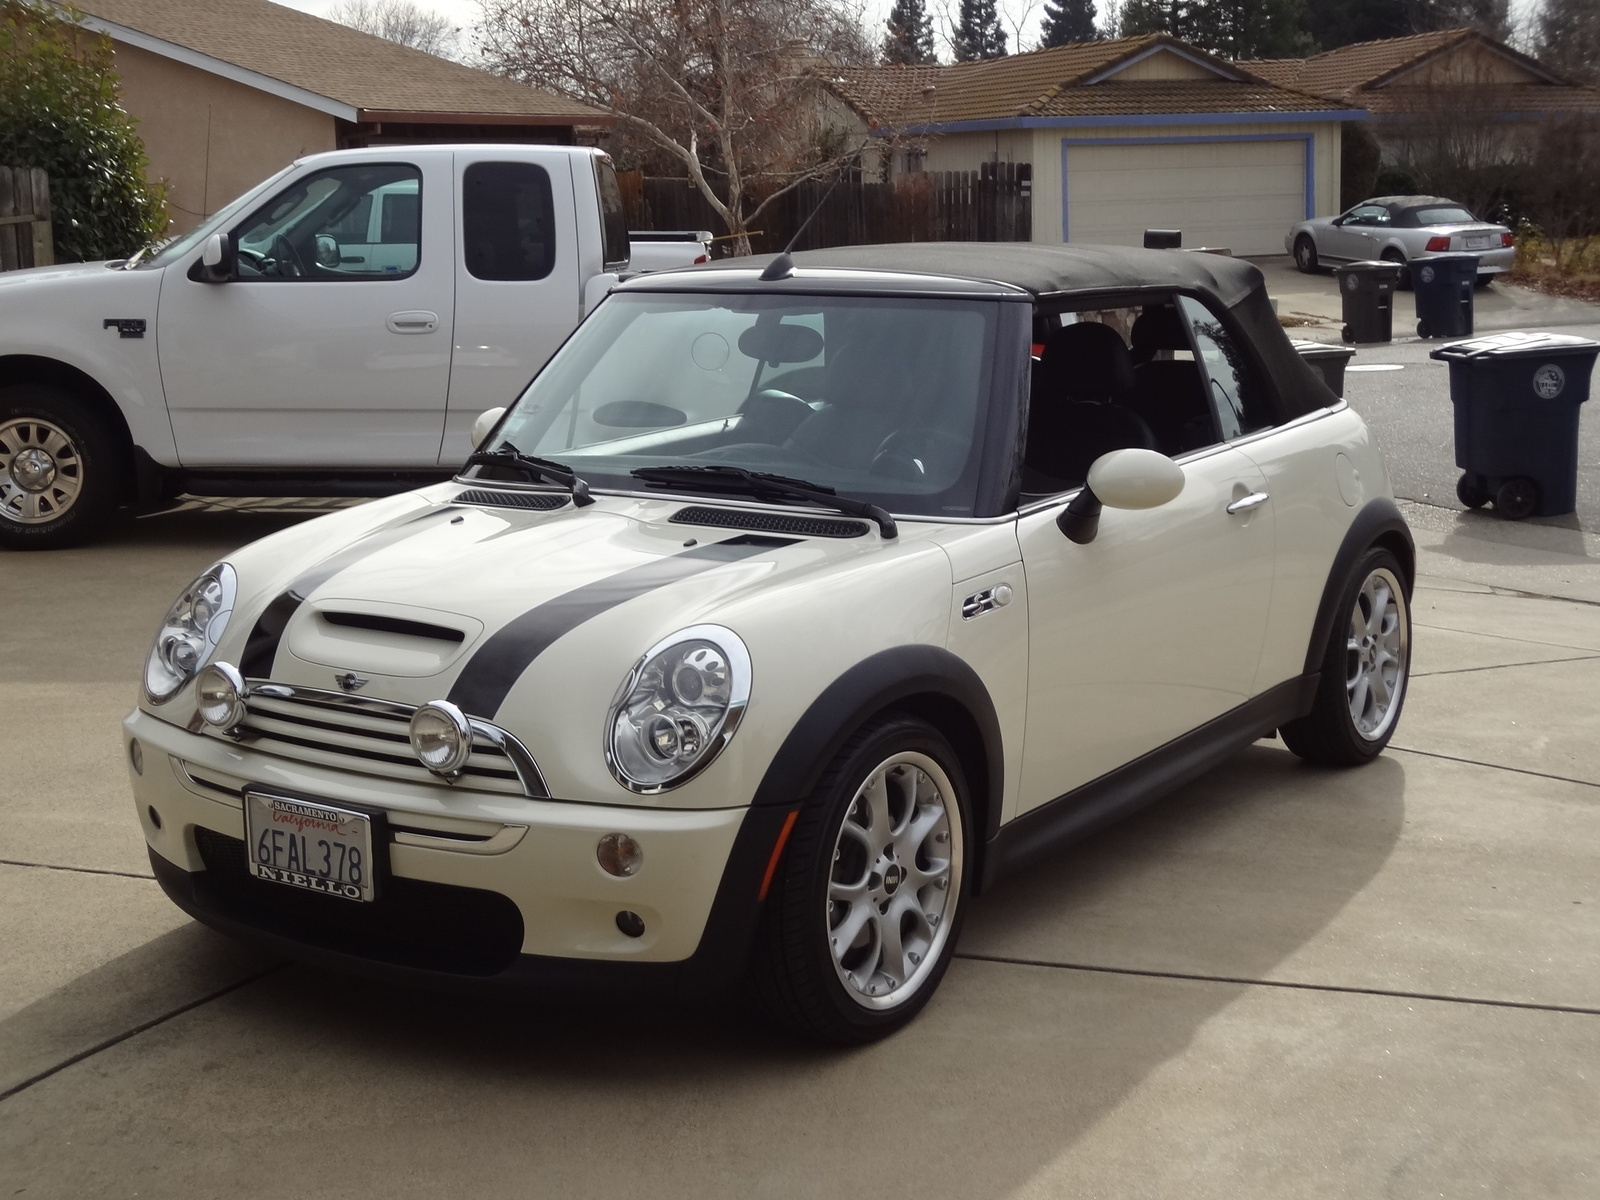 MINI Cooper Questions Repair will cost more than car is worth